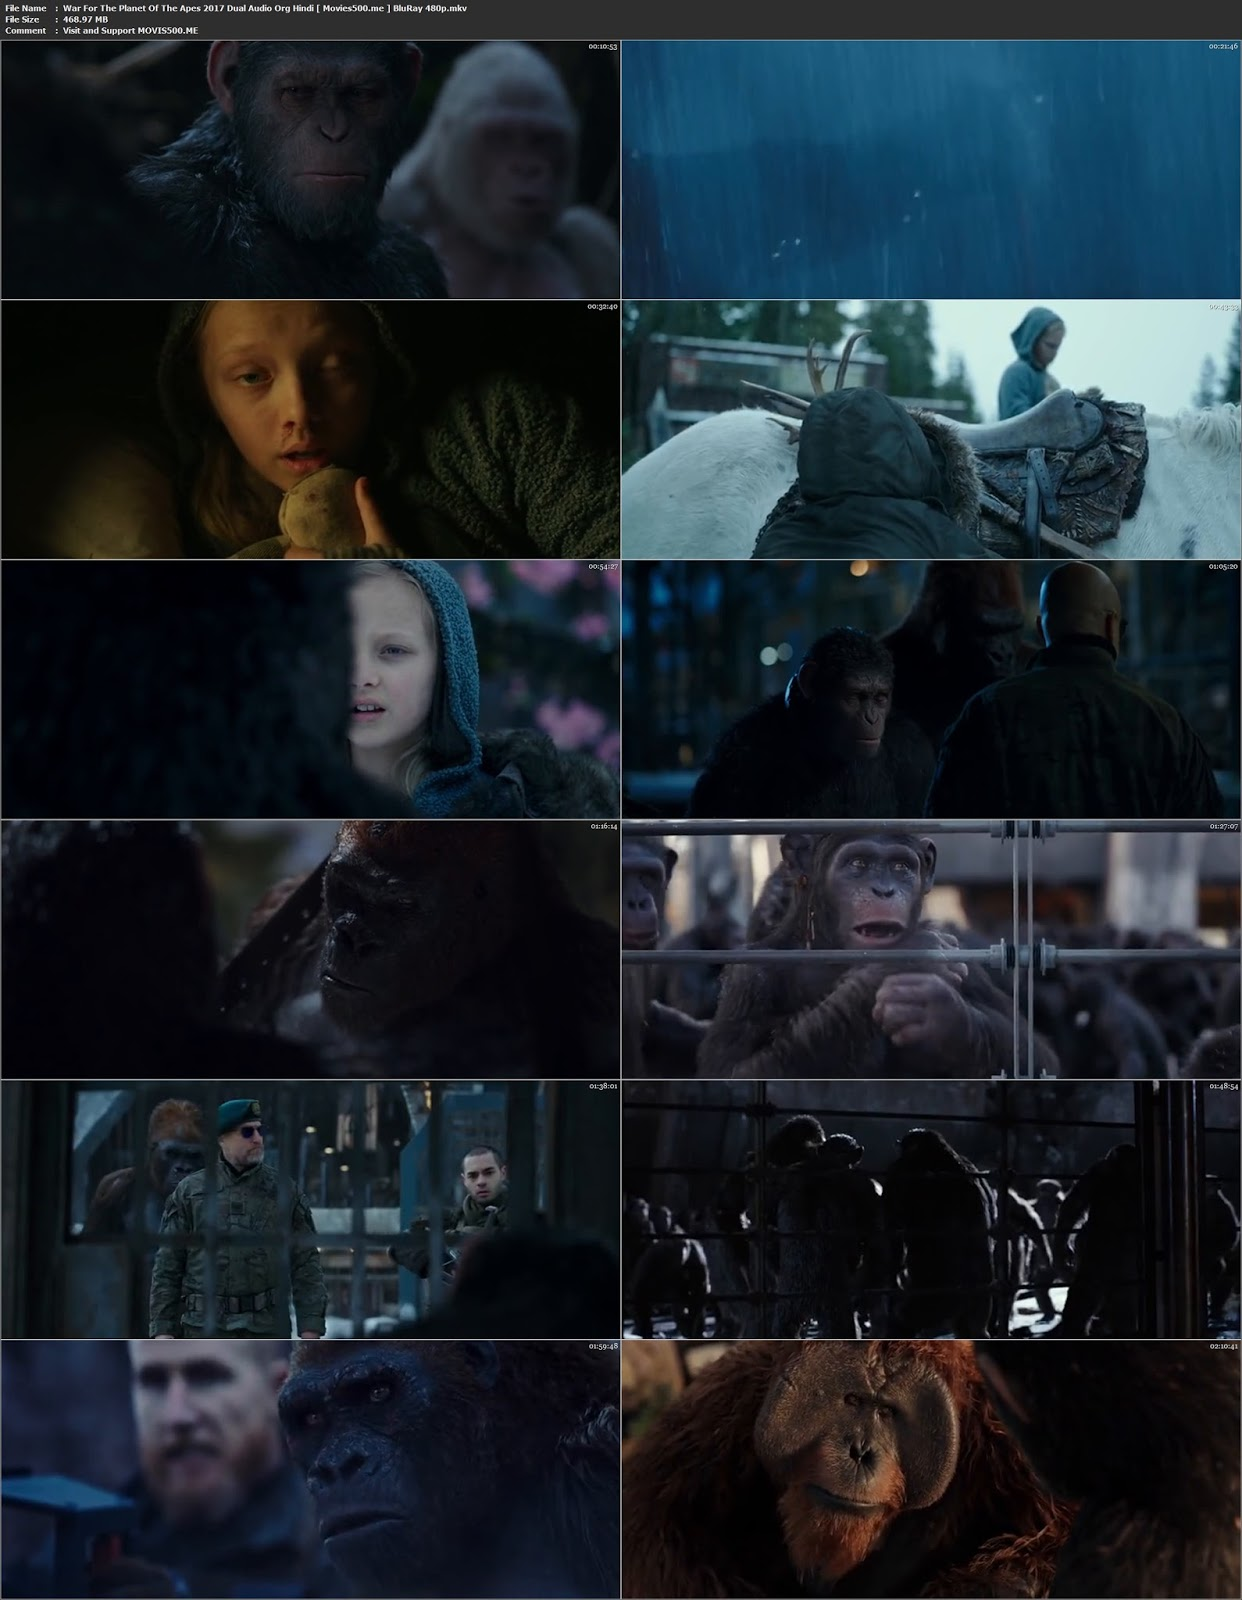 War For The Planet Of The Apes 2017 Hindi Mobile Download 480p 250MB at 9966132.com